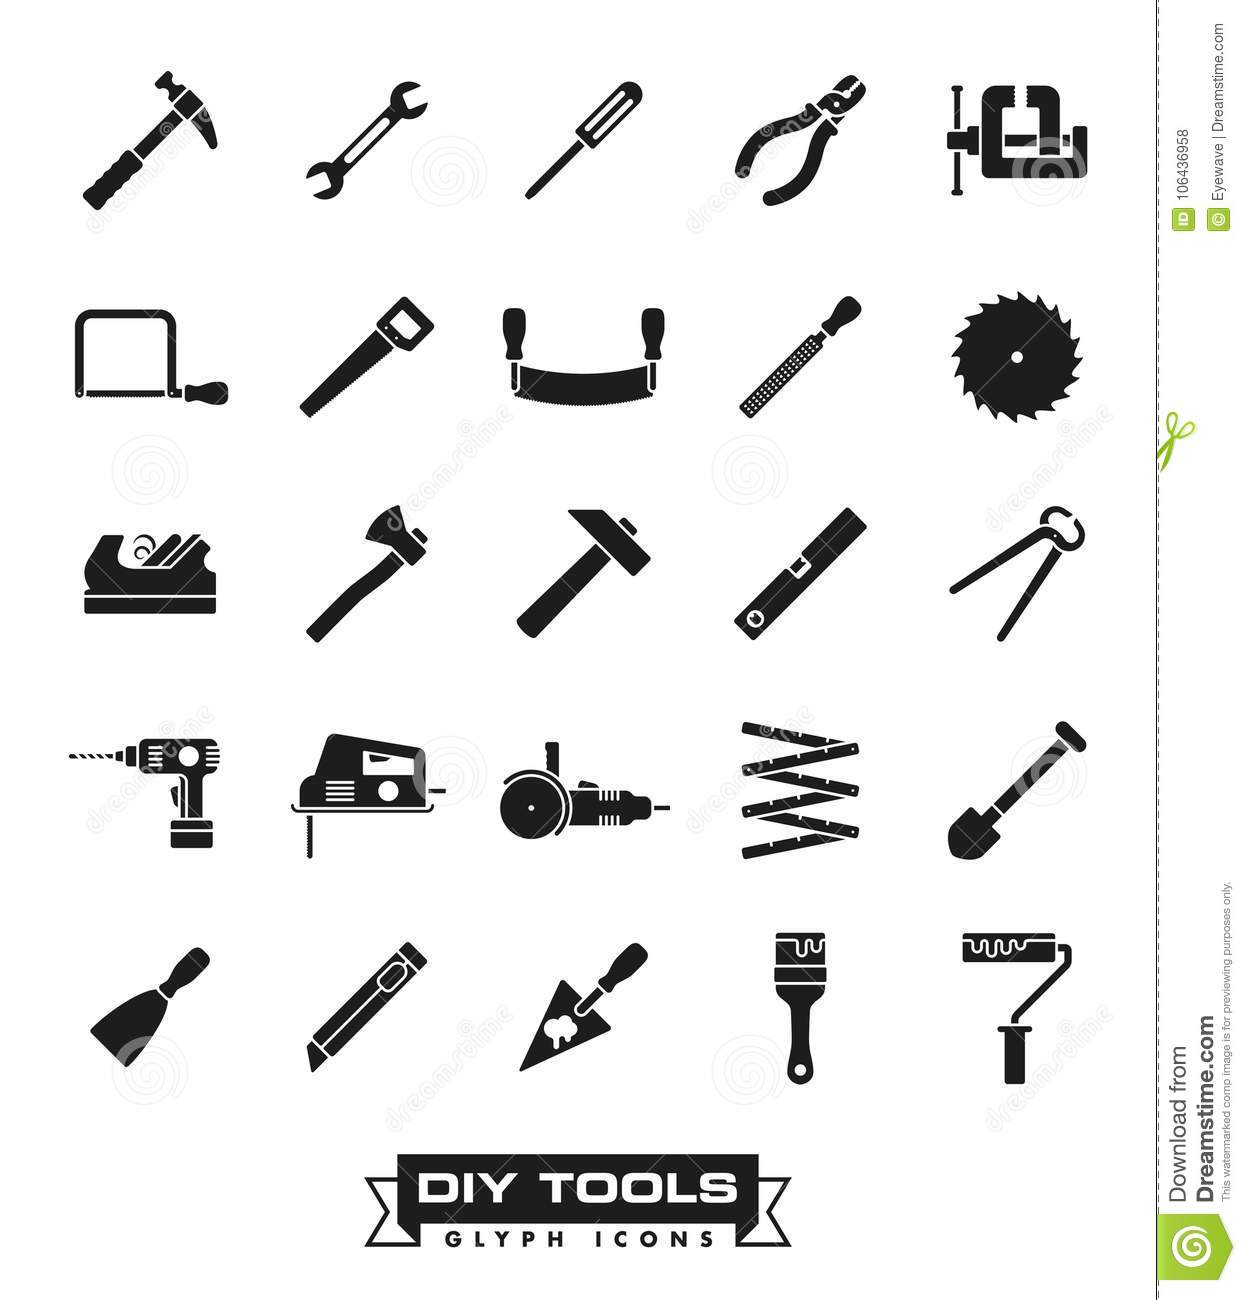 Crafting tools glyph icon set